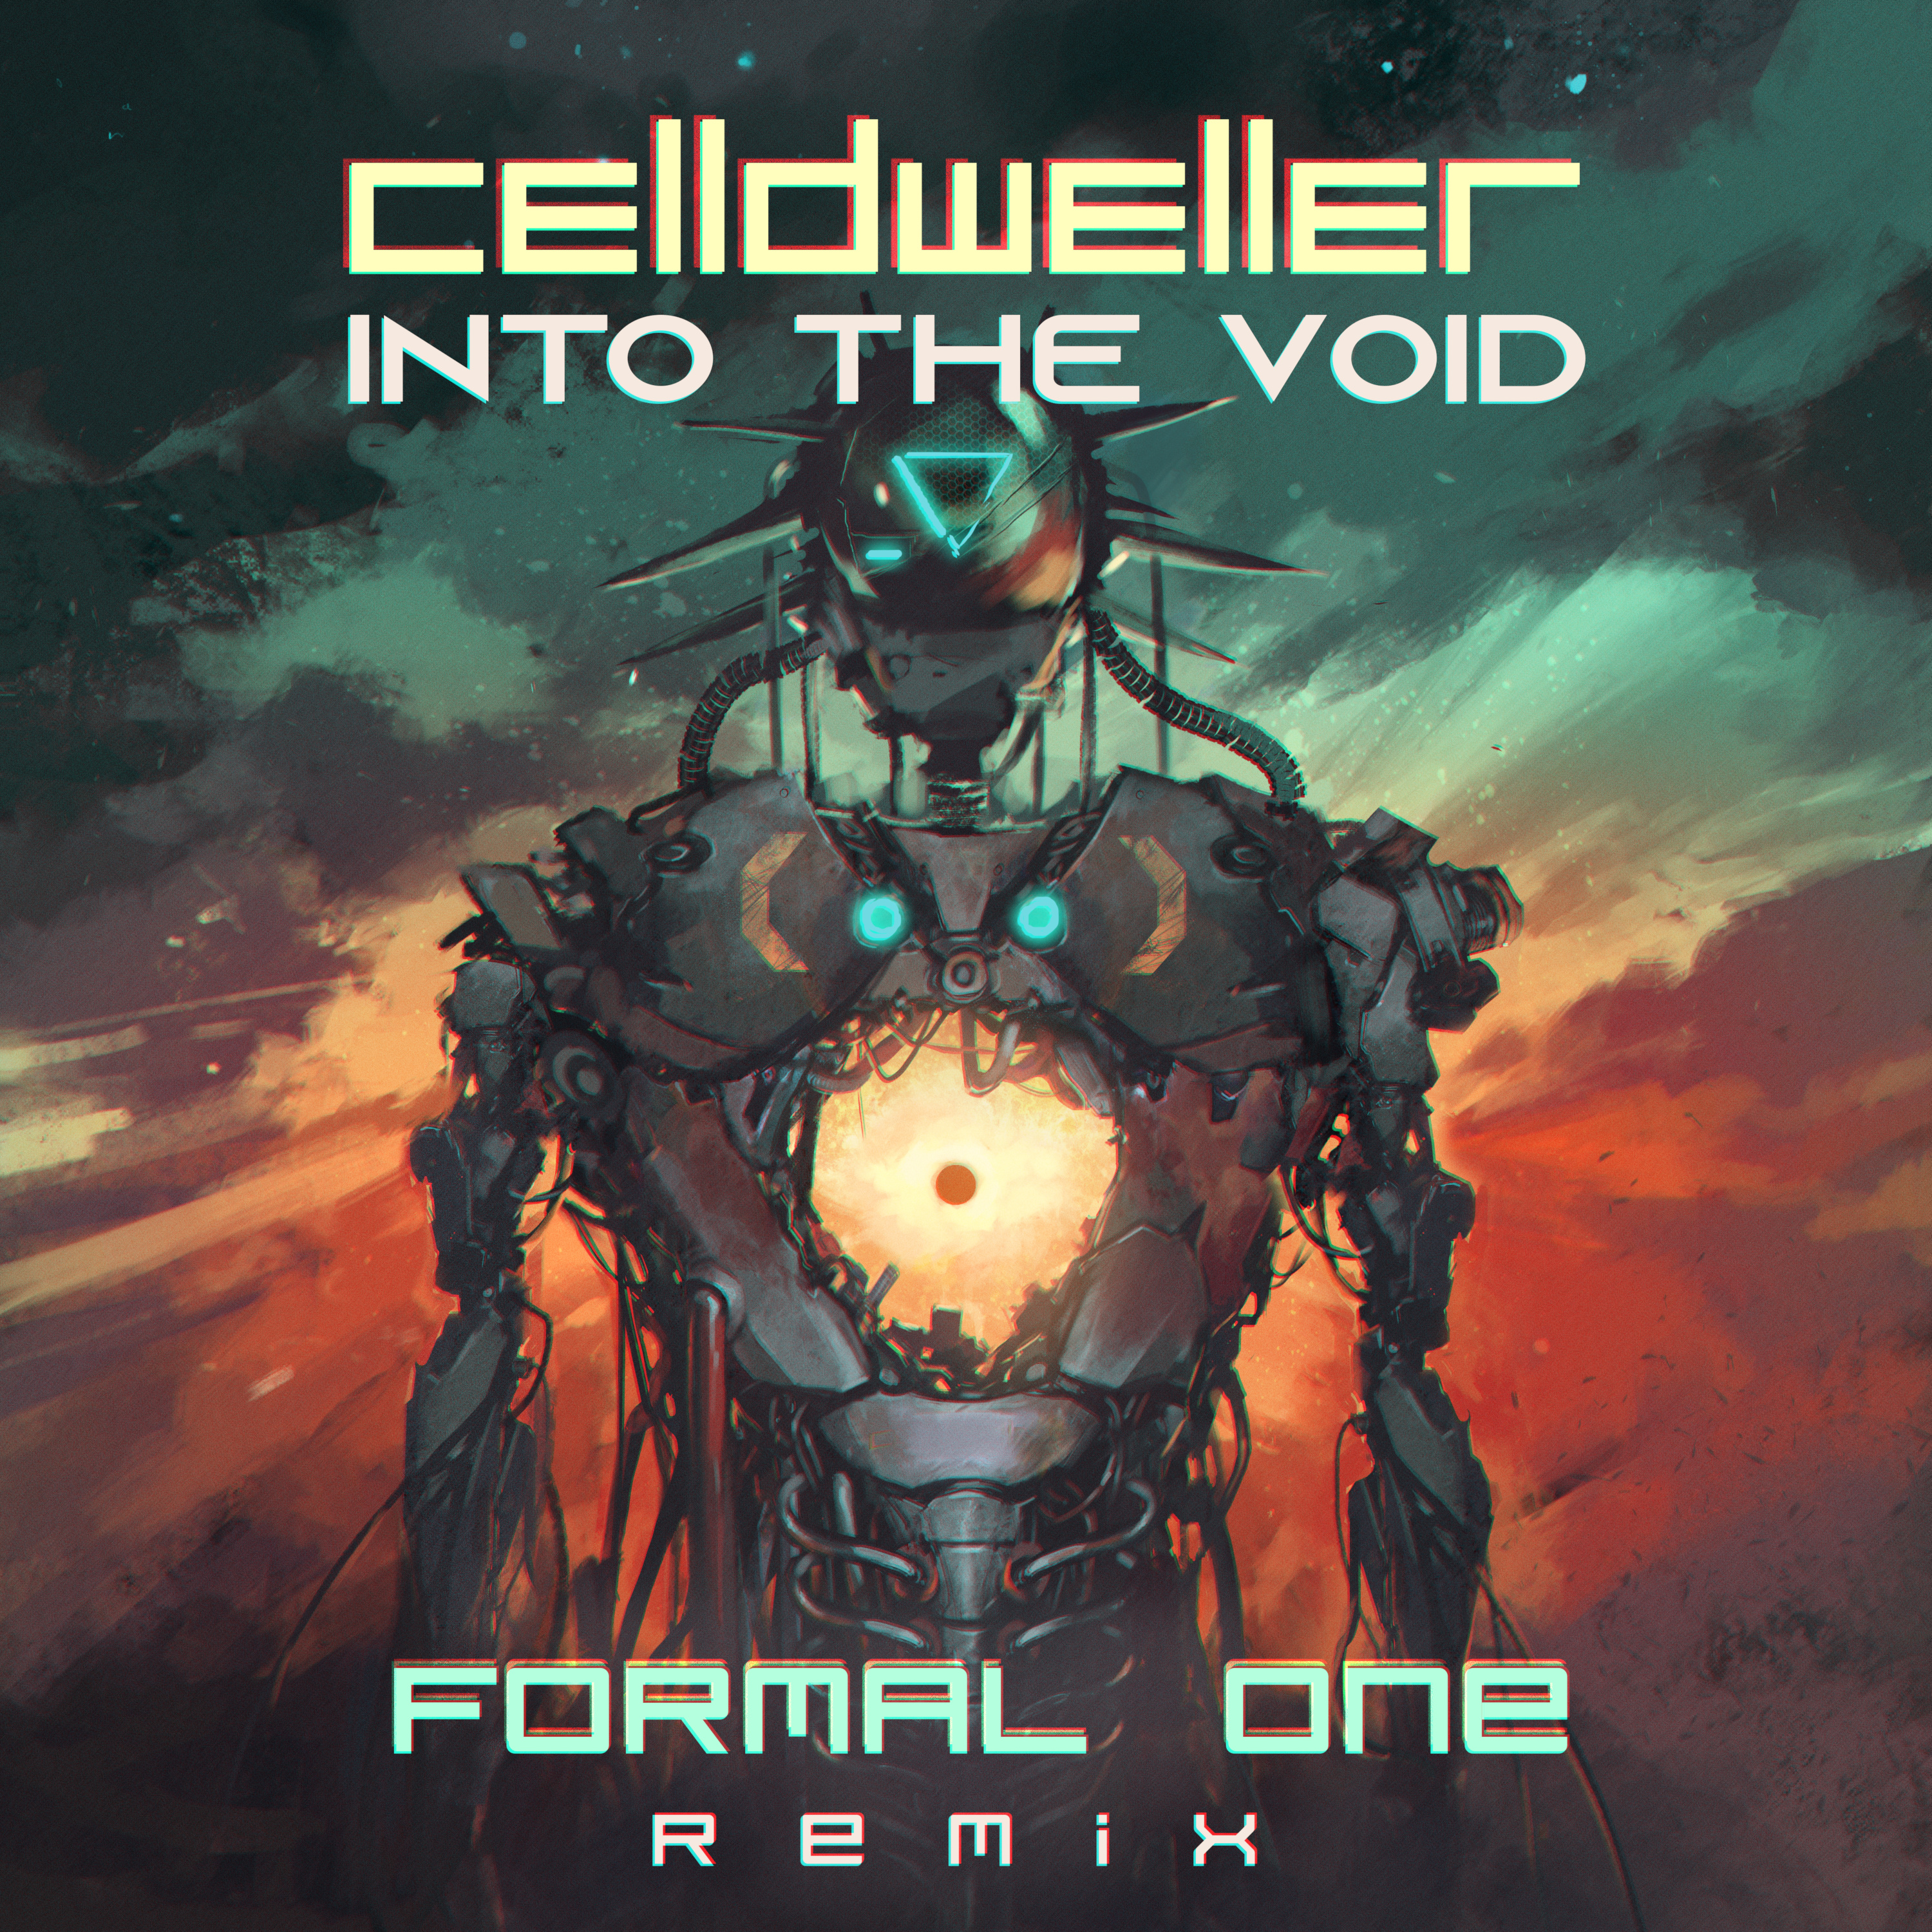 Celldweller - Into The Void (Formal One Remix) [Single] Image